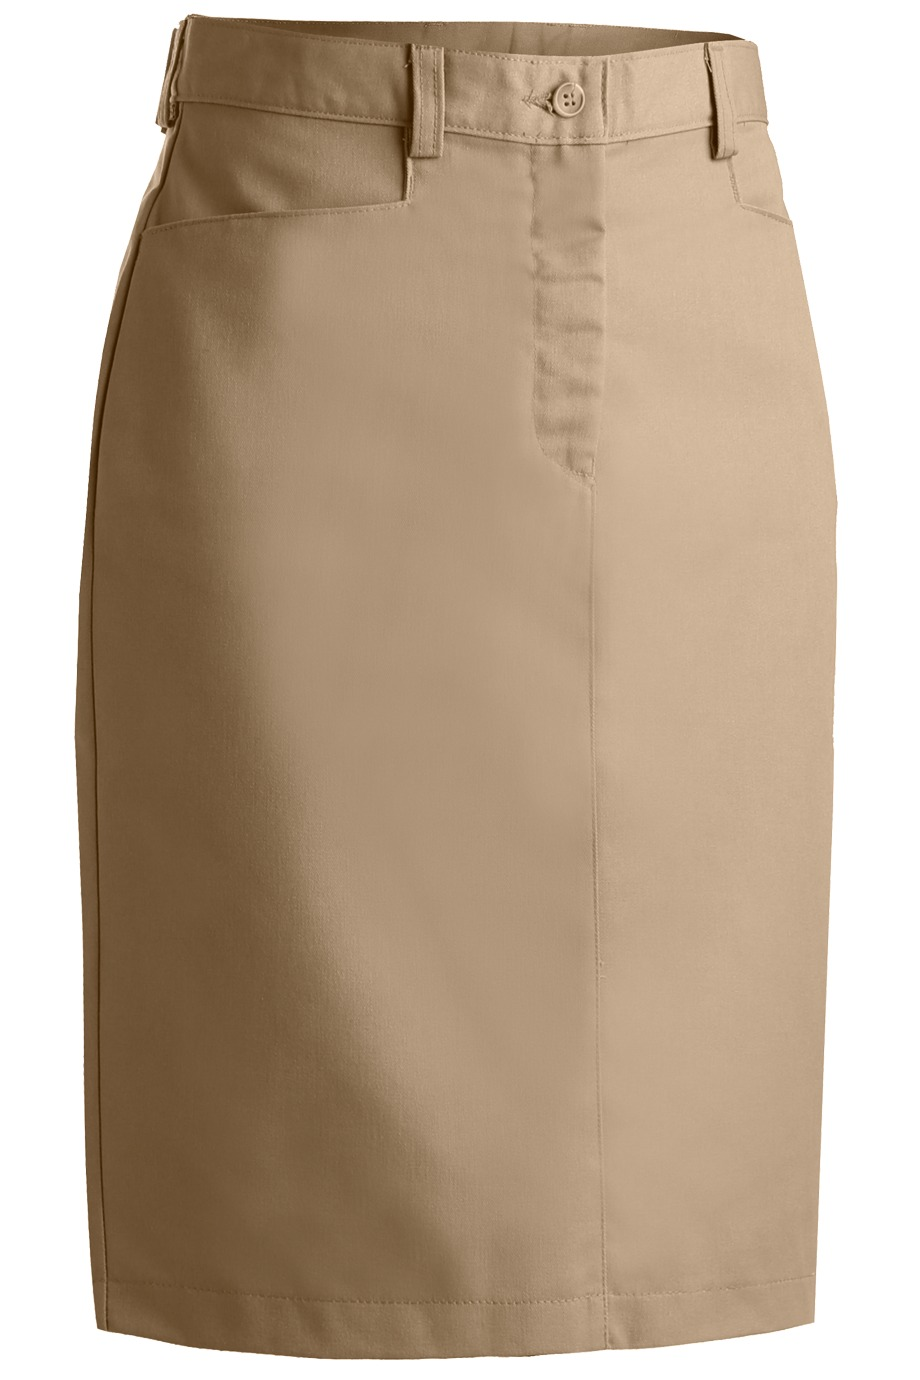 Edwards Garment 9711 - Women's Chino Skirt